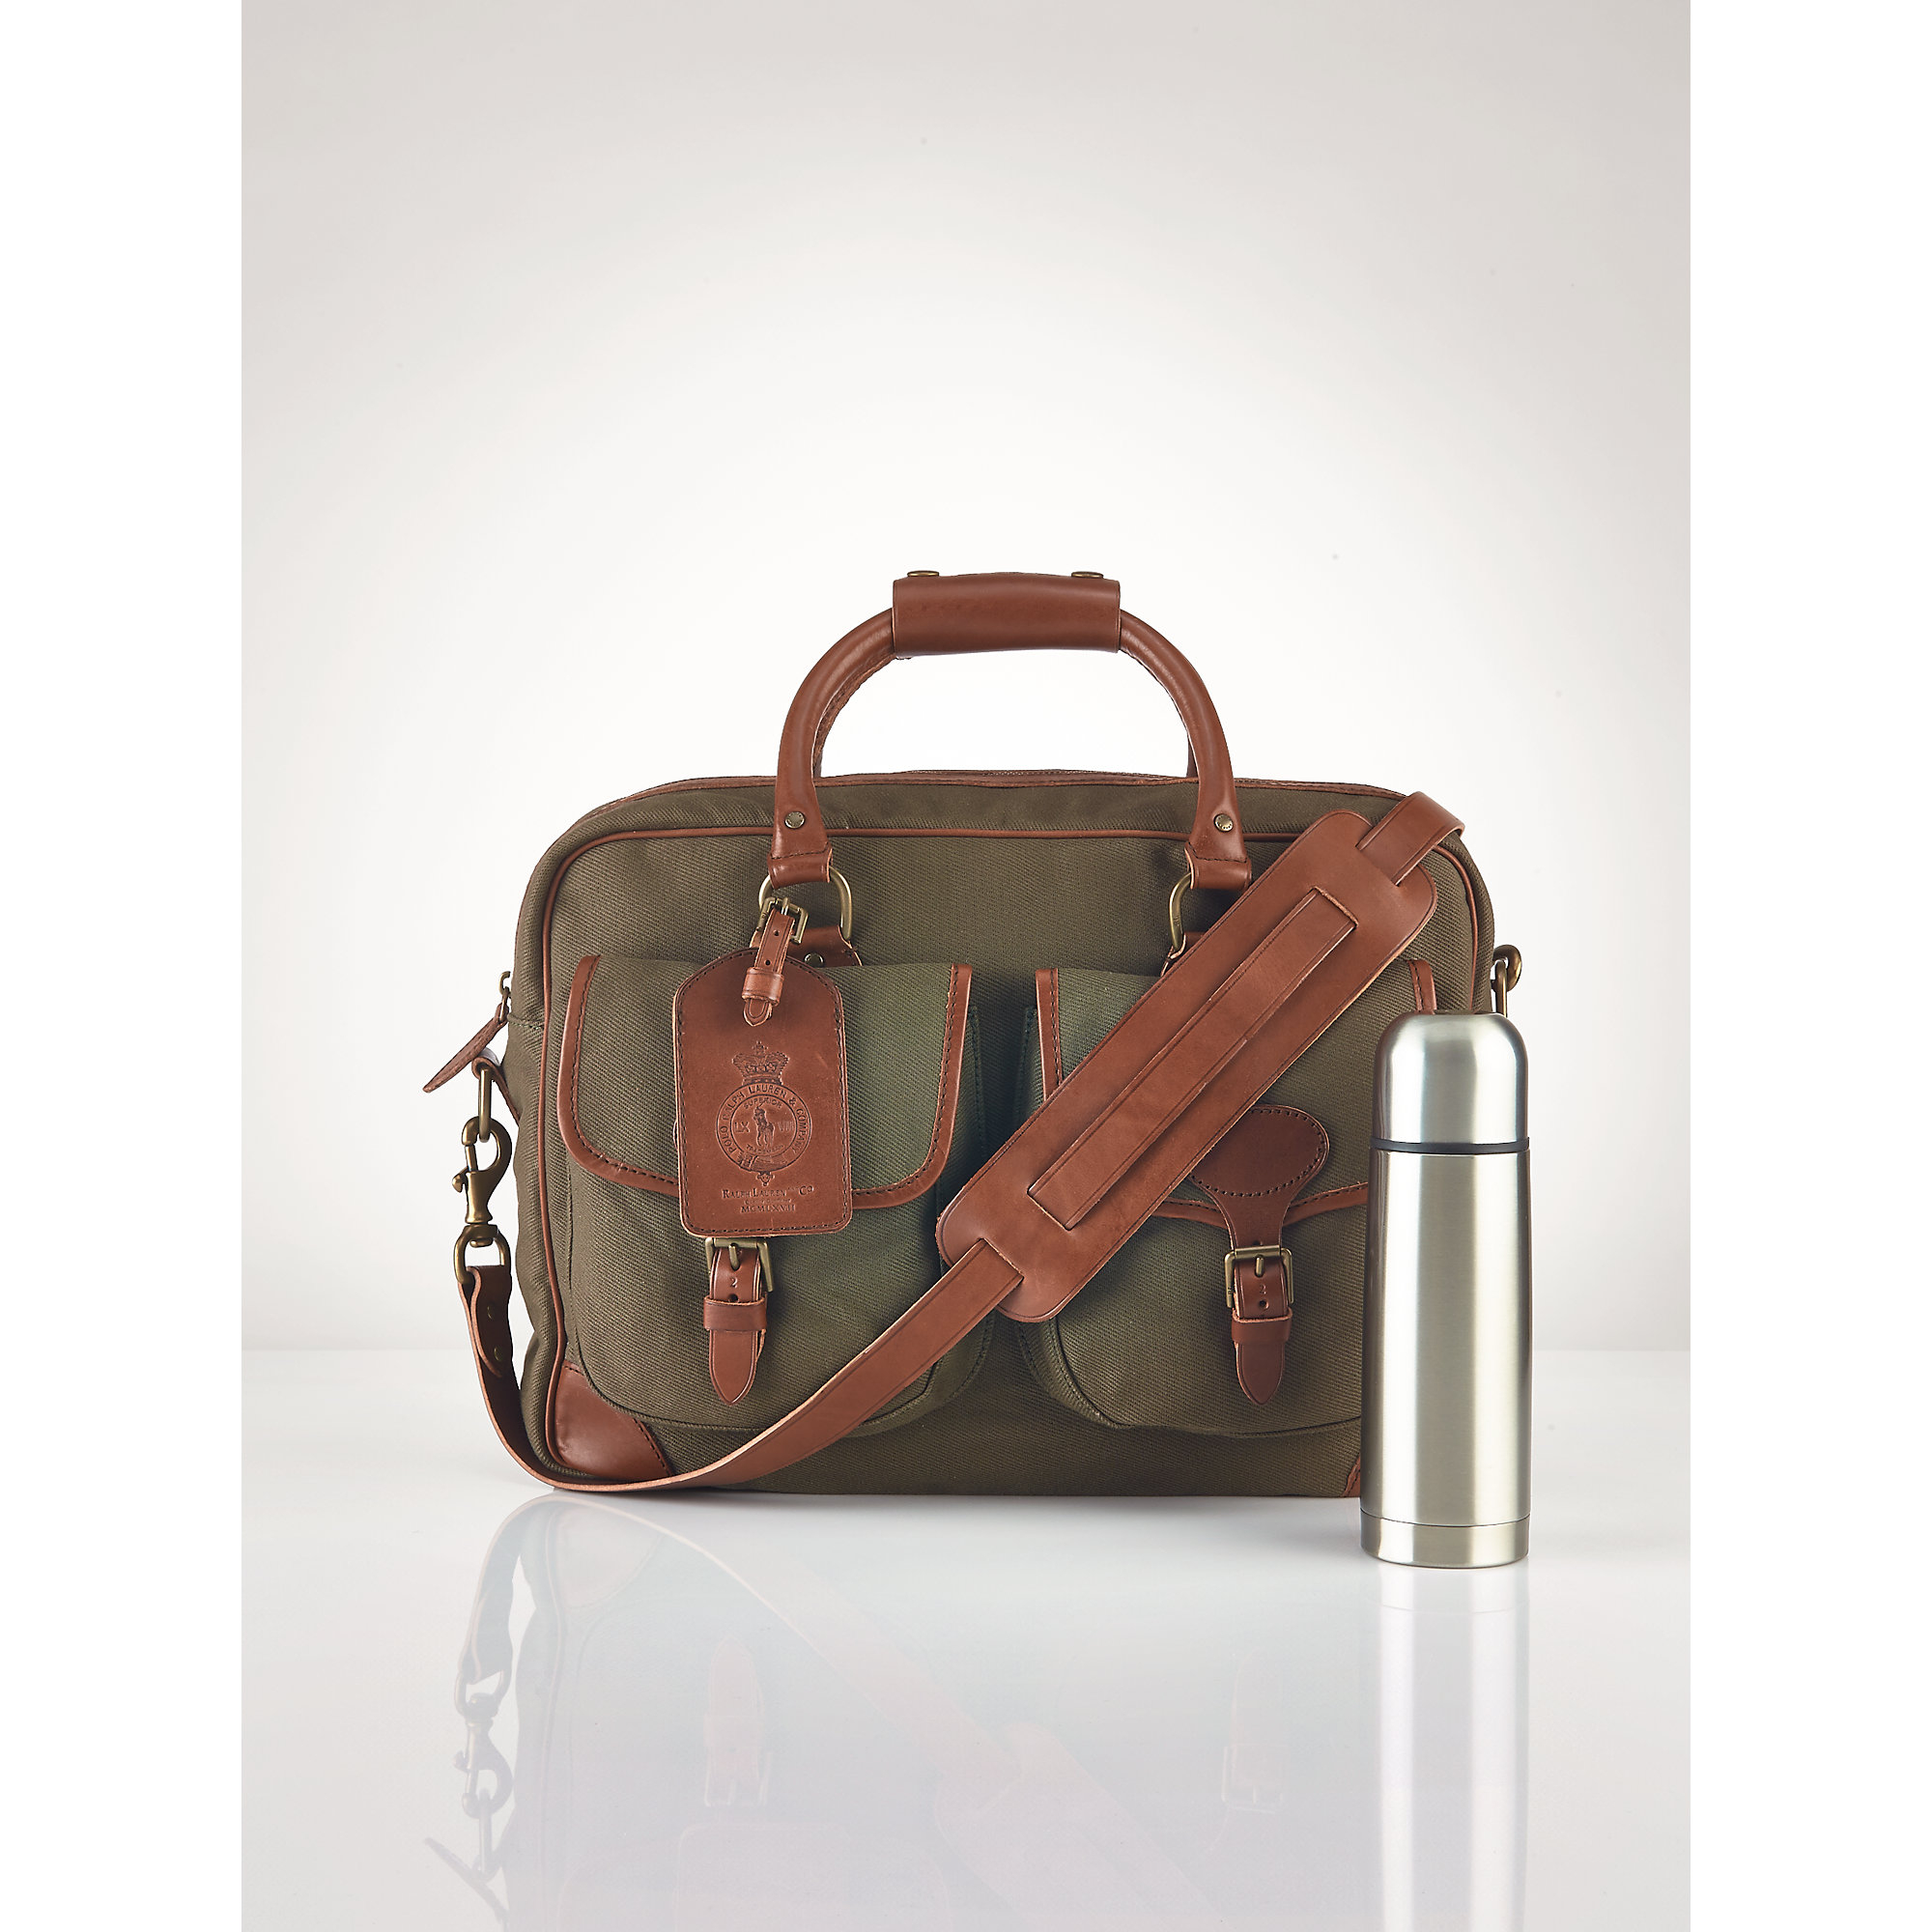 6c937a538b74 ... uk lyst polo ralph lauren canvas leather commuter bag in green for men  d2f99 e407d